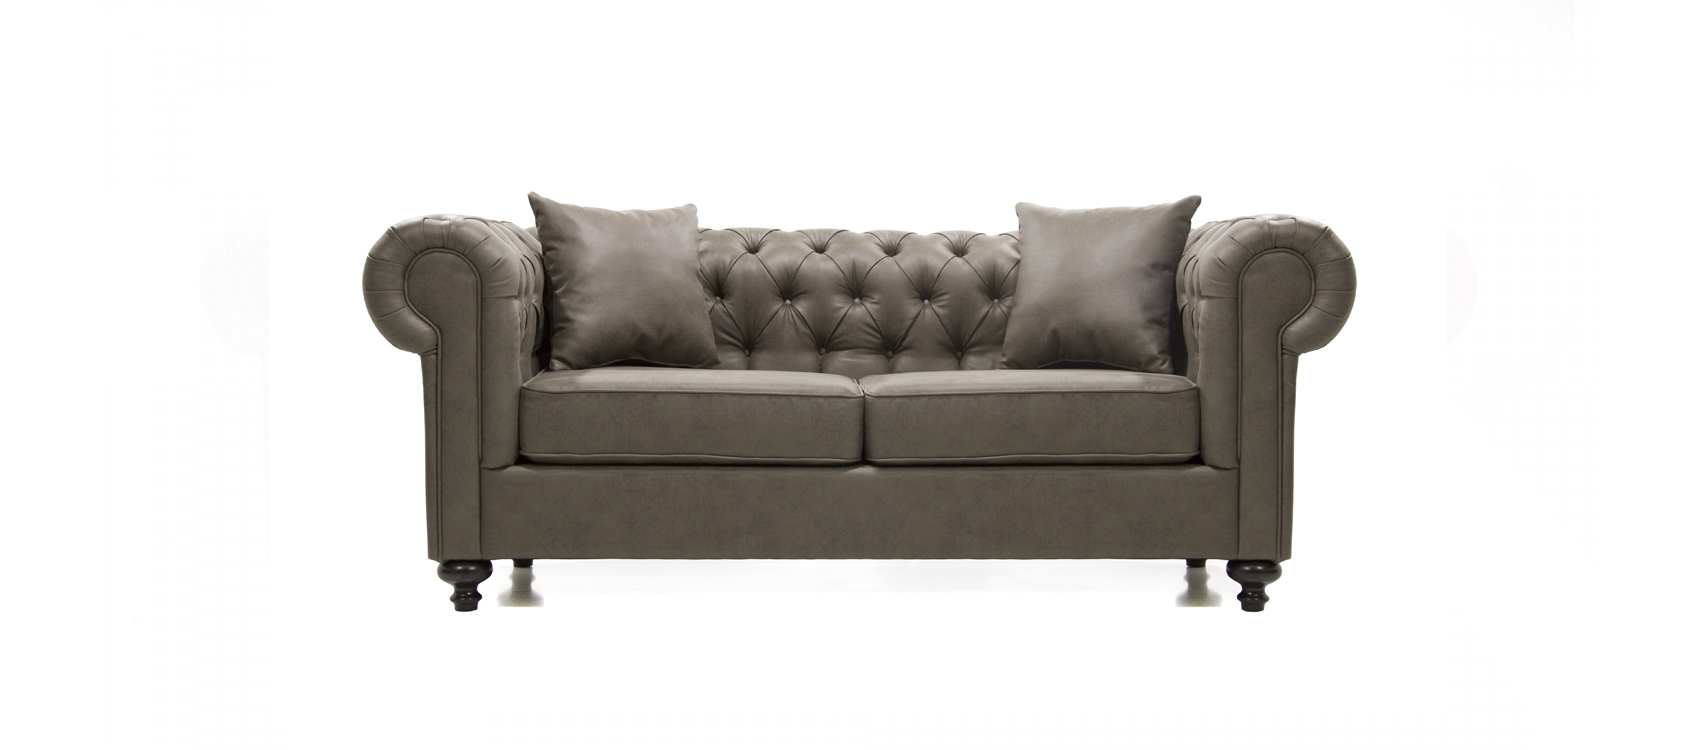 Sofa CHESTER 2 SEATER фото 5